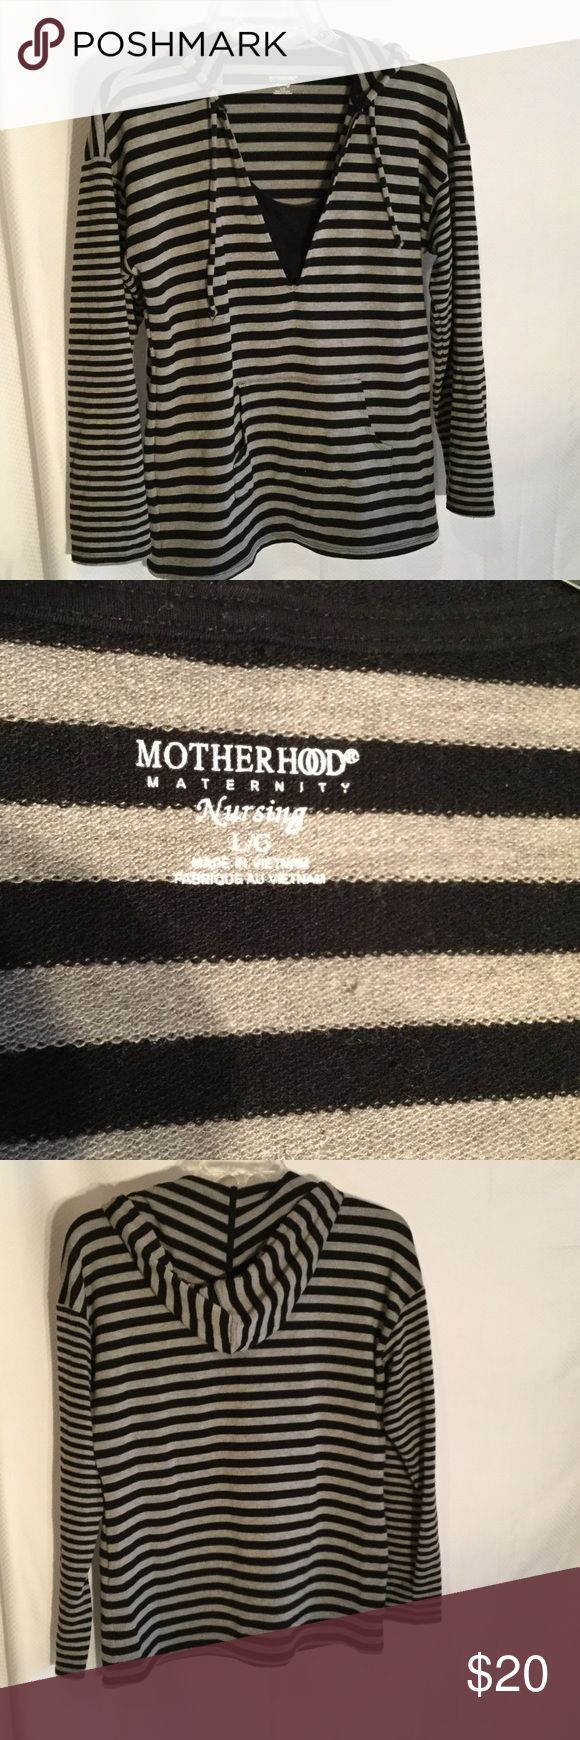 Motherhood nursing grey/blk sweatshirt L Ladies motherhood brand nursing sweatshirt in a grey and black stripe. Very soft with patch pocket details in front that looks cute on a growing belly ,but also hides an after delivery belly . Very versatile color and super useful for the breastfeeding mom. Size L Motherhood Tops Sweatshirts & Hoodies